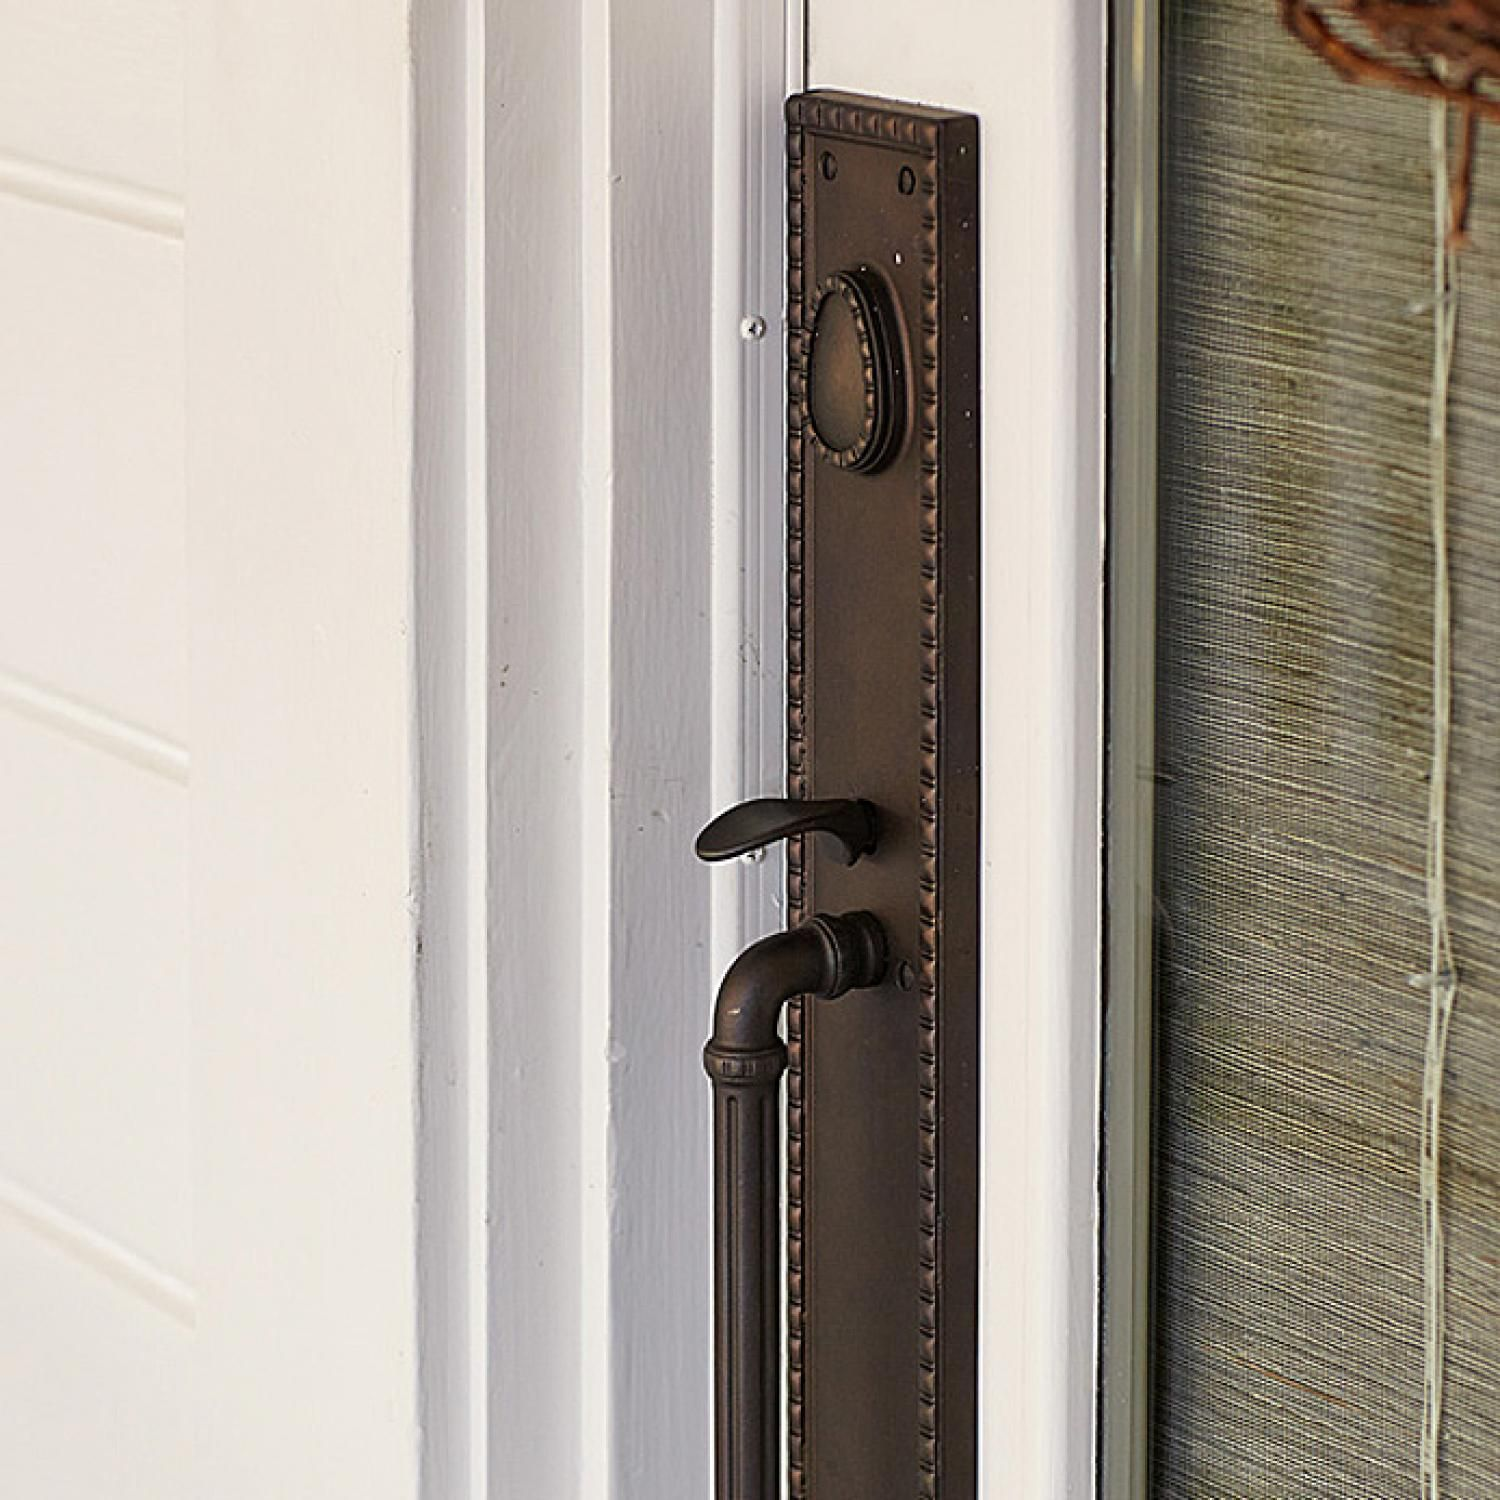 Rocky mountain hardware corbel rectangular collection entry rocky mountain hardware corbel rectangular collection entry door hardware featured on this rubansaba